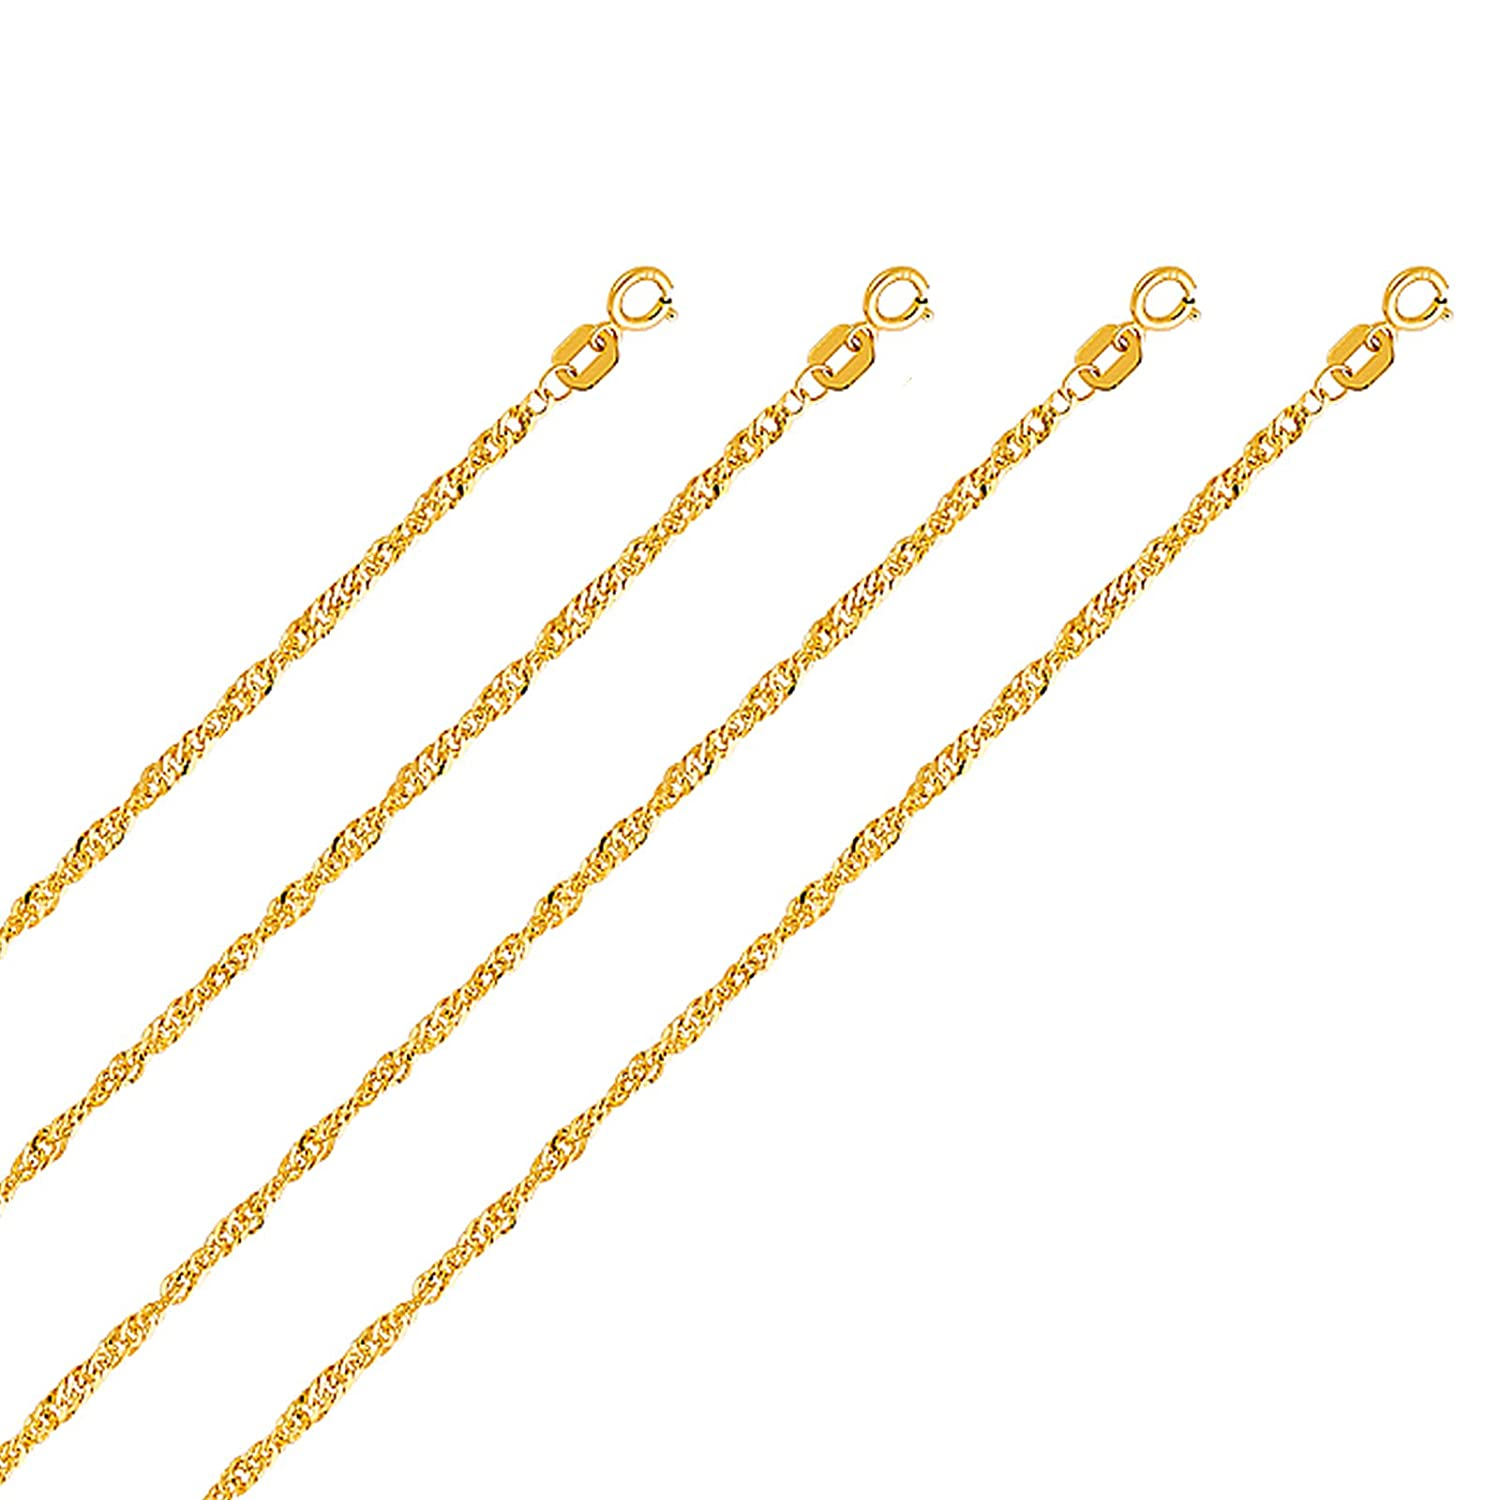 14k Yellow Gold 2.1mm Hollow Singapore Chain with Spring Ring Clasp